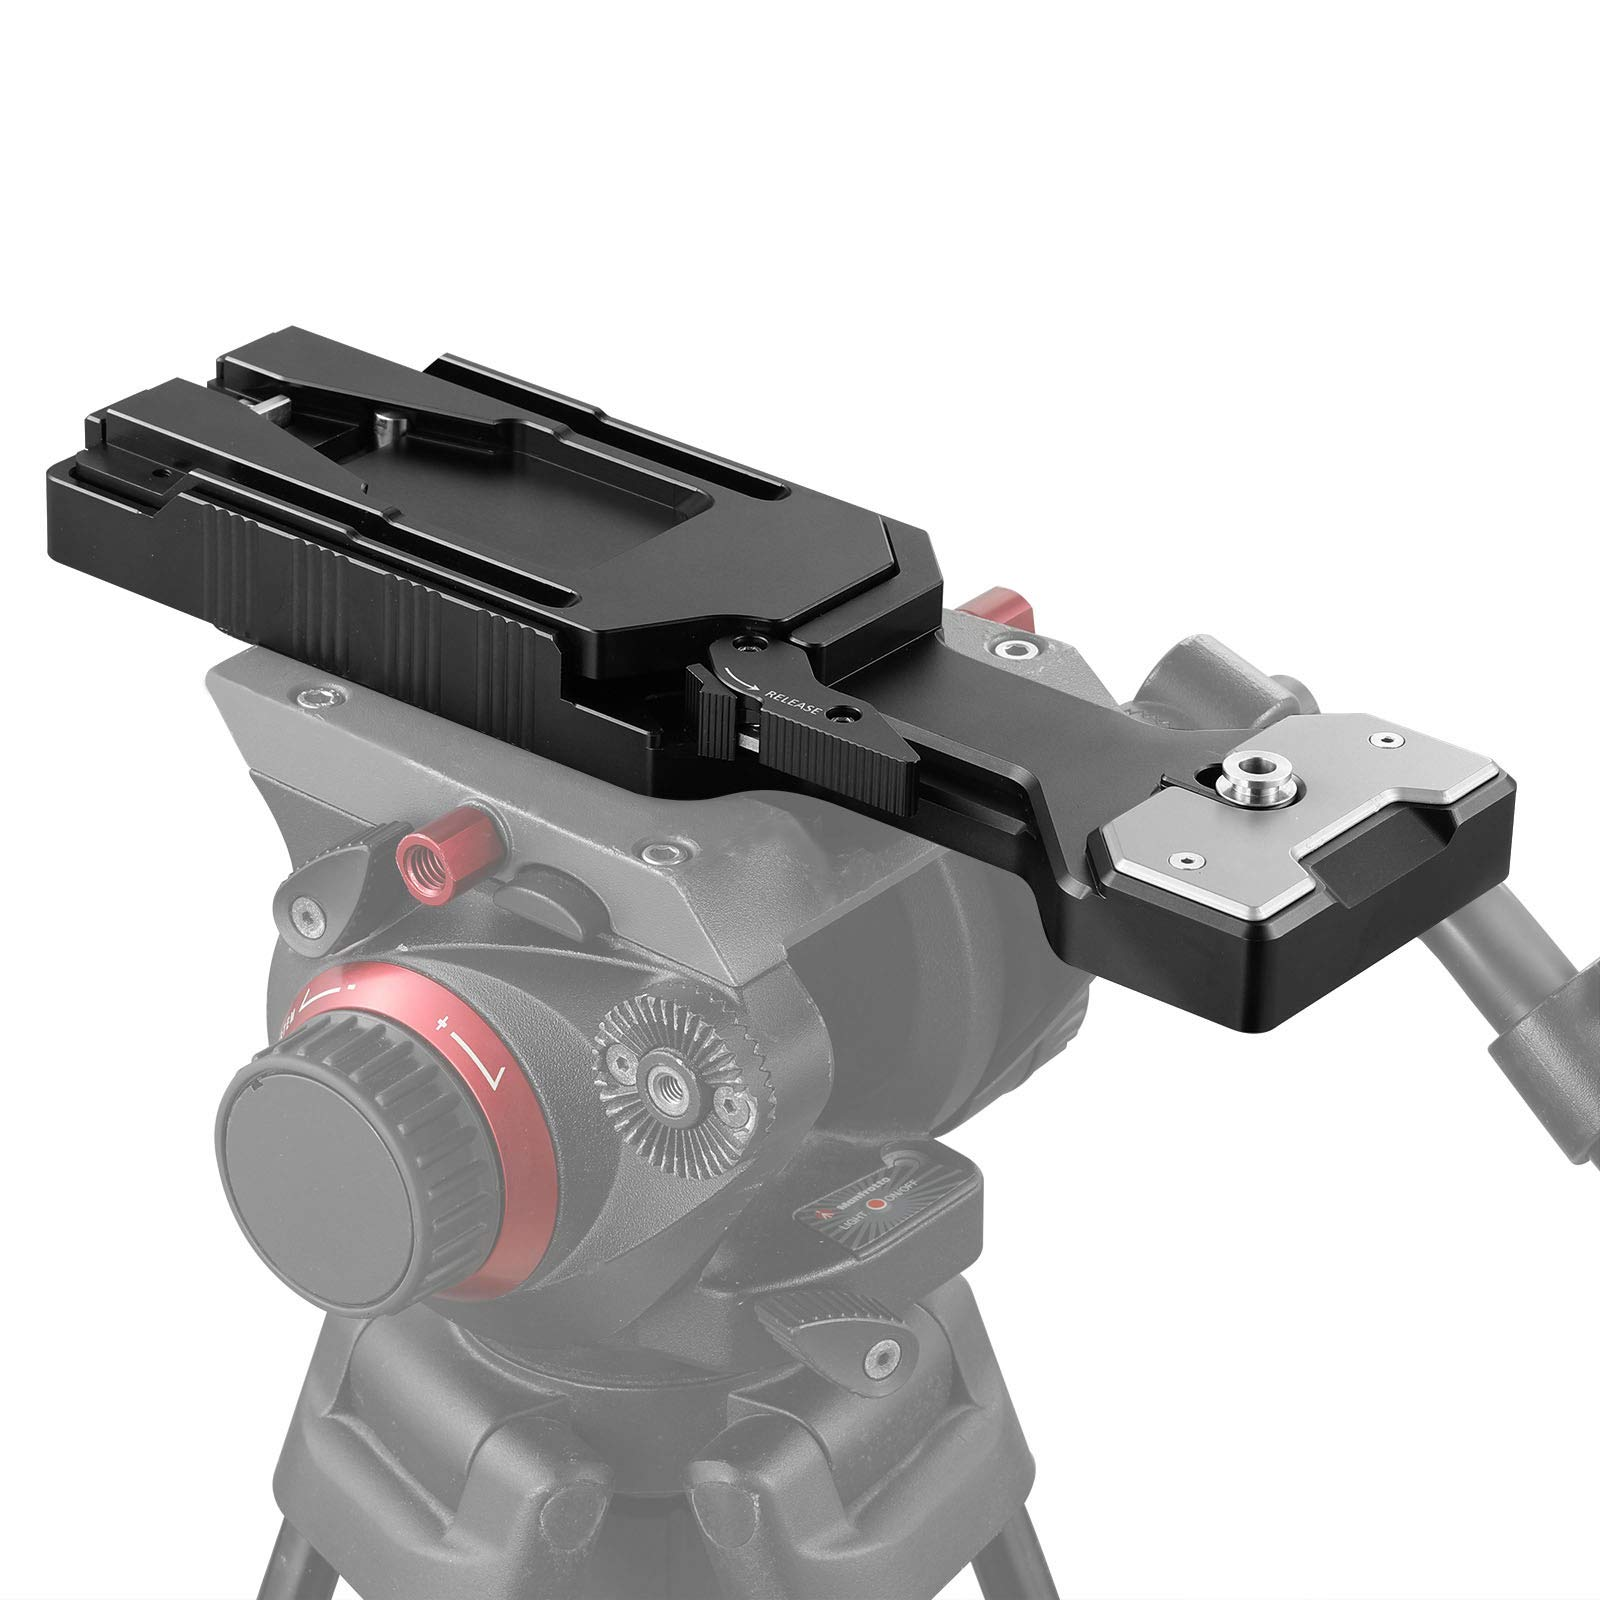 SMALLRIG Universal Quick Release Tripod Adapter Plate for Sony VCT-14-2169 by SMALLRIG (Image #5)